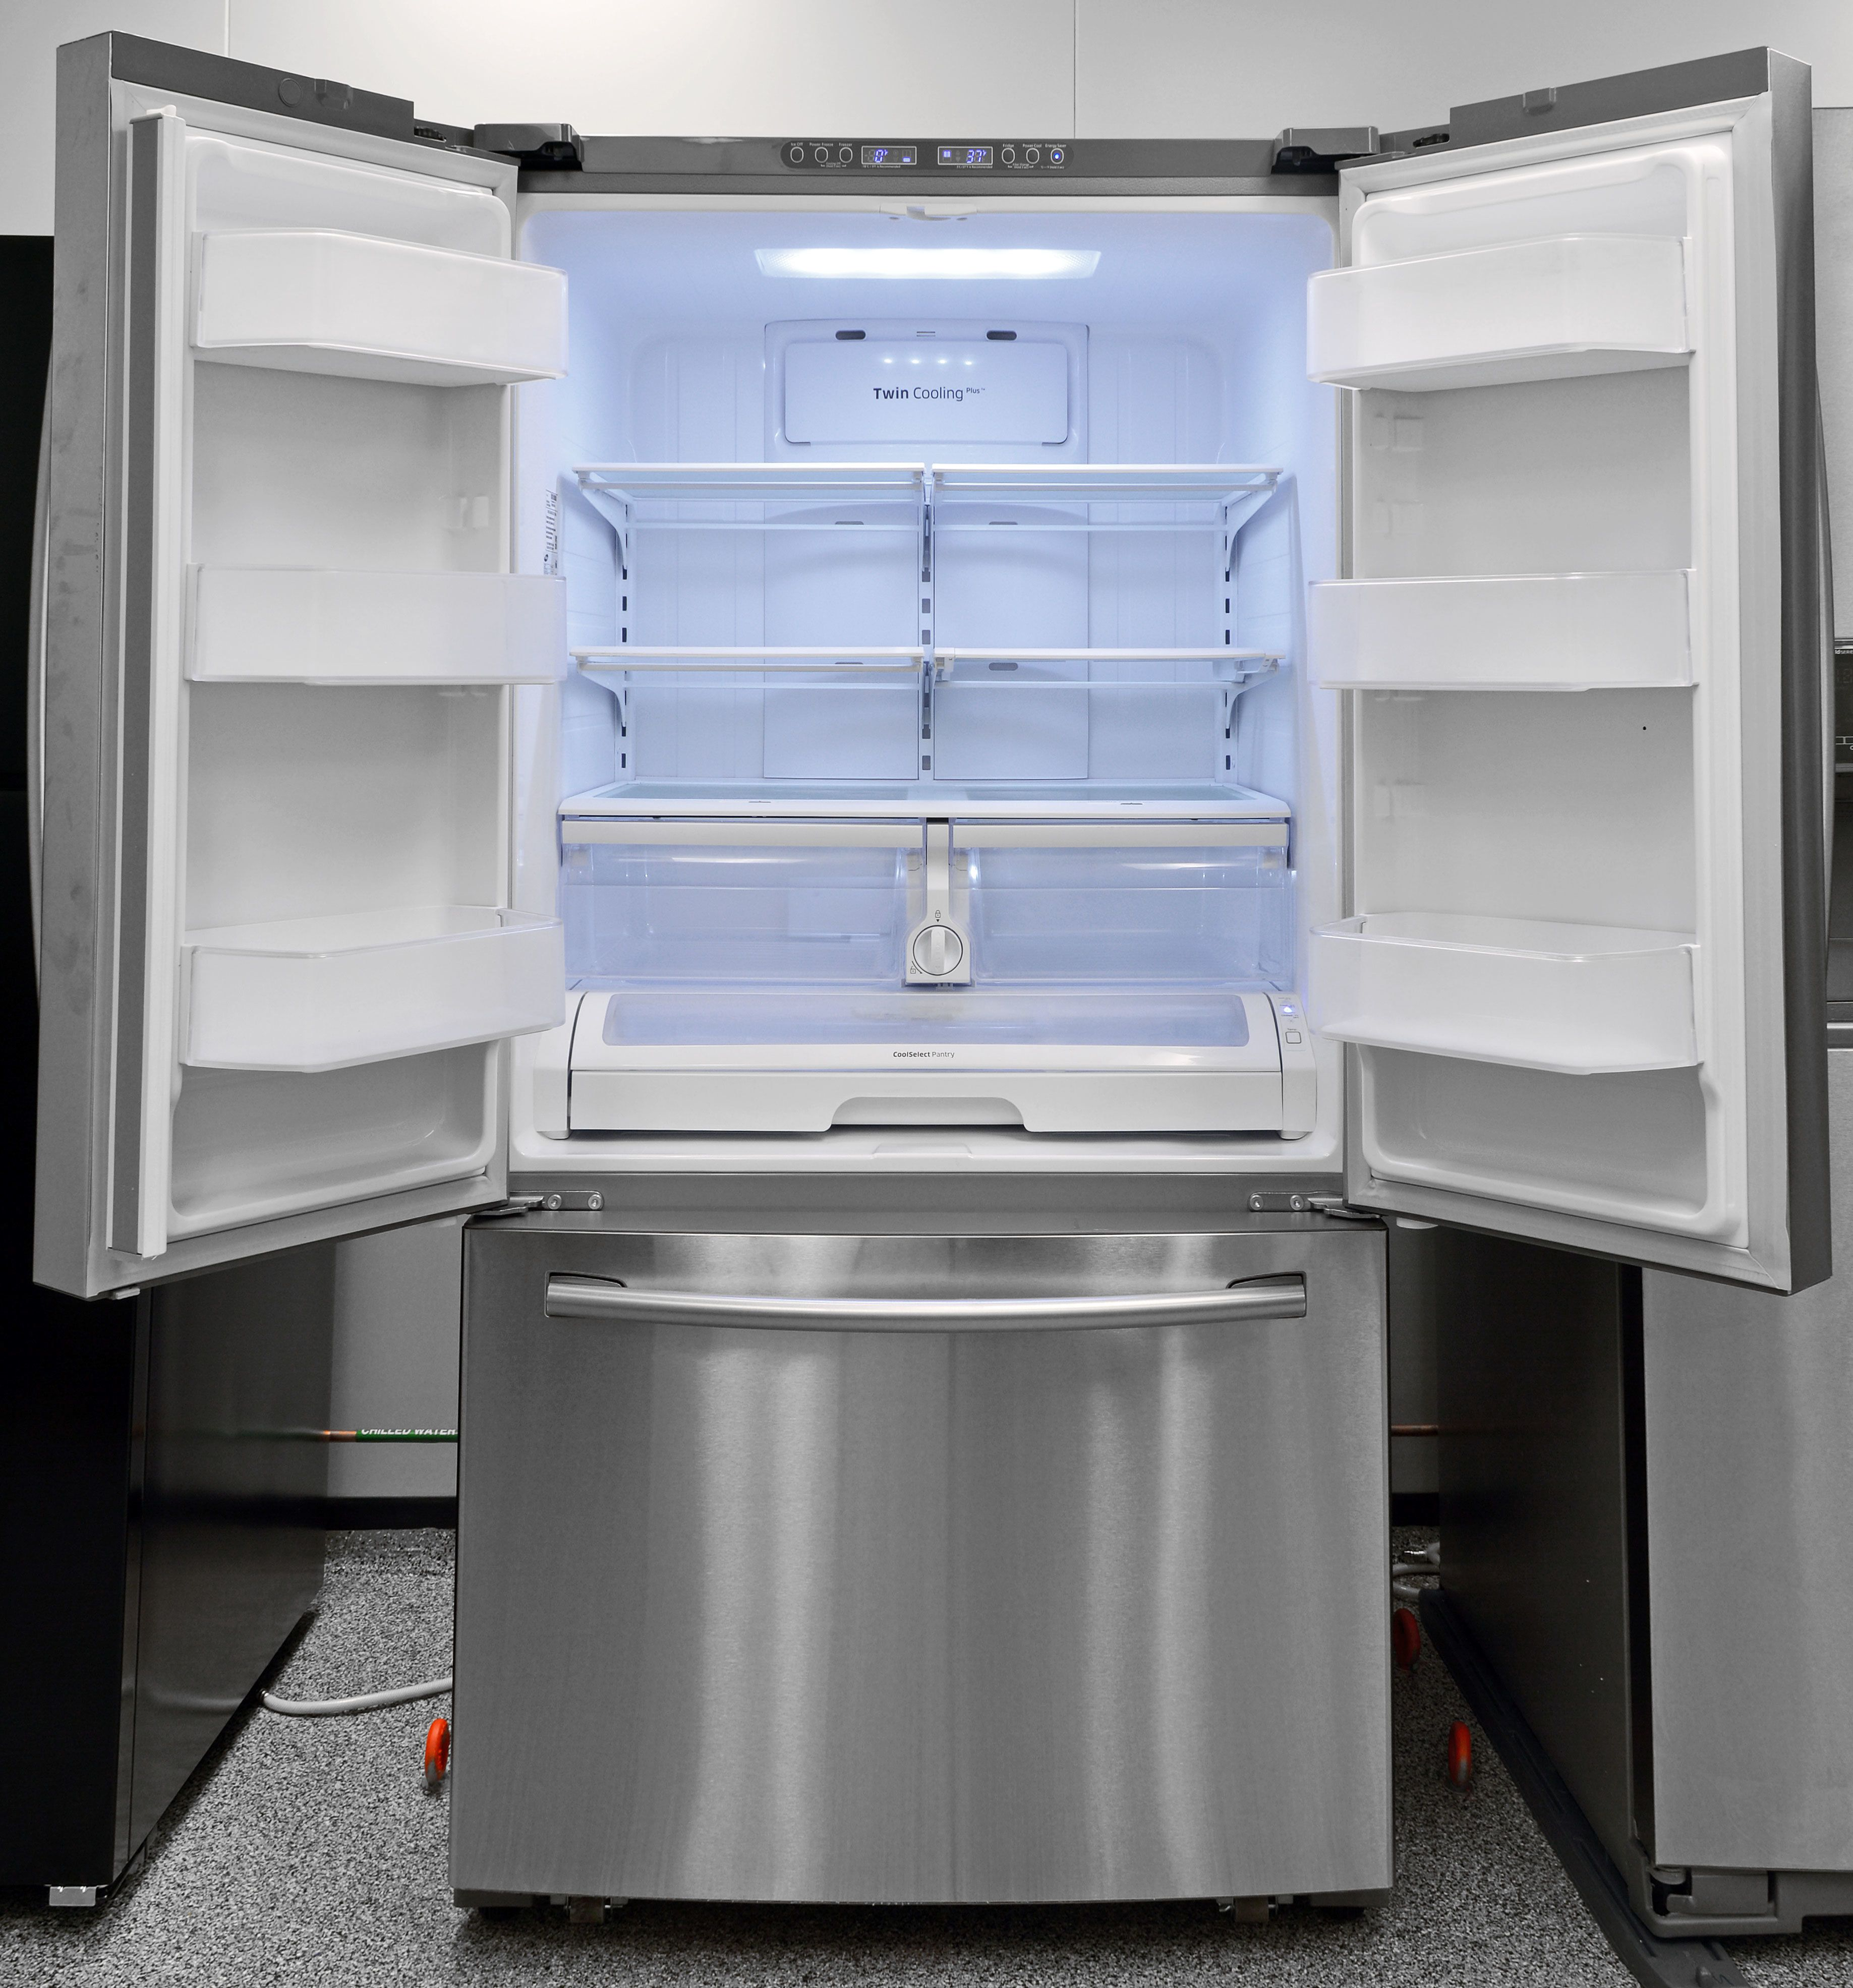 Samsung Rf260beaesr Counter Depth Refrigerator Kitchen Redo